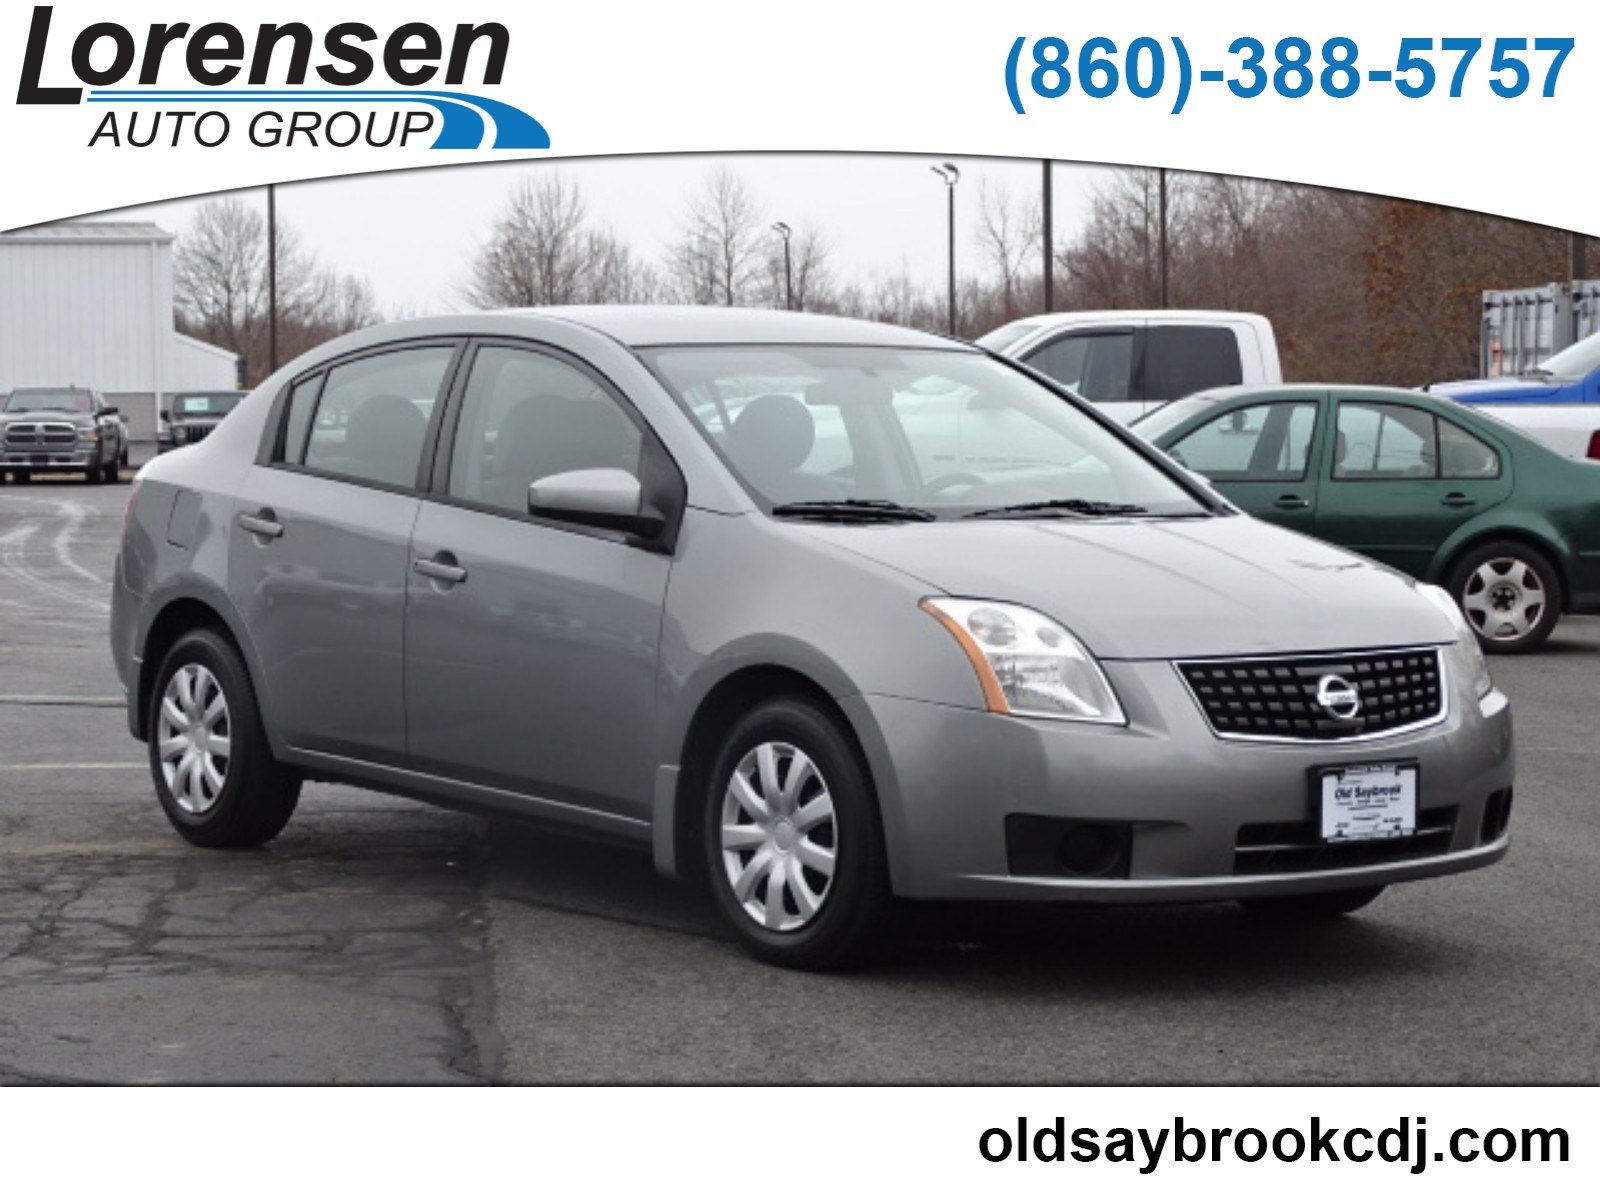 Pre-Owned 2007 Nissan Sentra 2.0